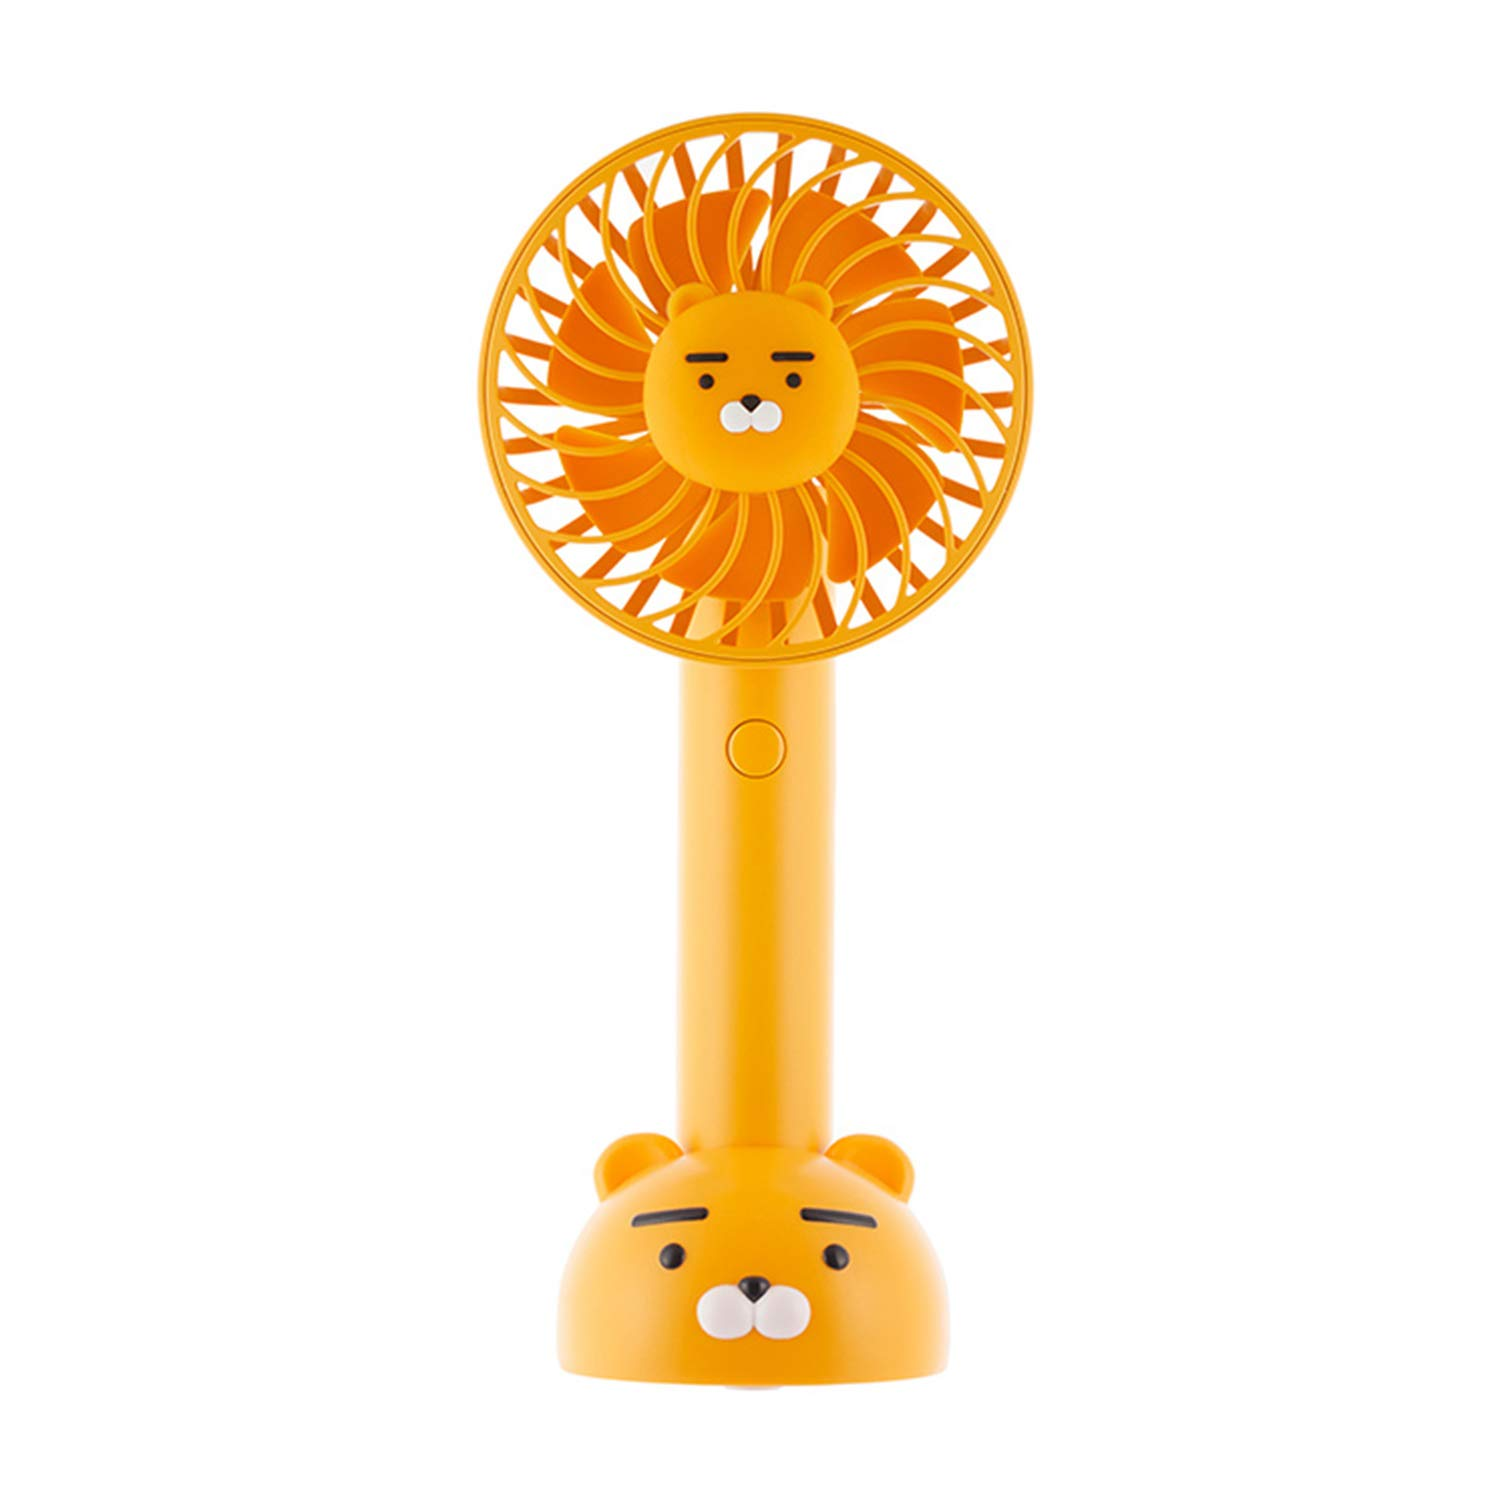 KAKAO FRIENDS Official- Portable Handheld Fan with Detachable Base, Rechargeable USB Charging 2200mAh Battery, Adjustable 3 Speed (Ryan) by KAKAO FRIENDS